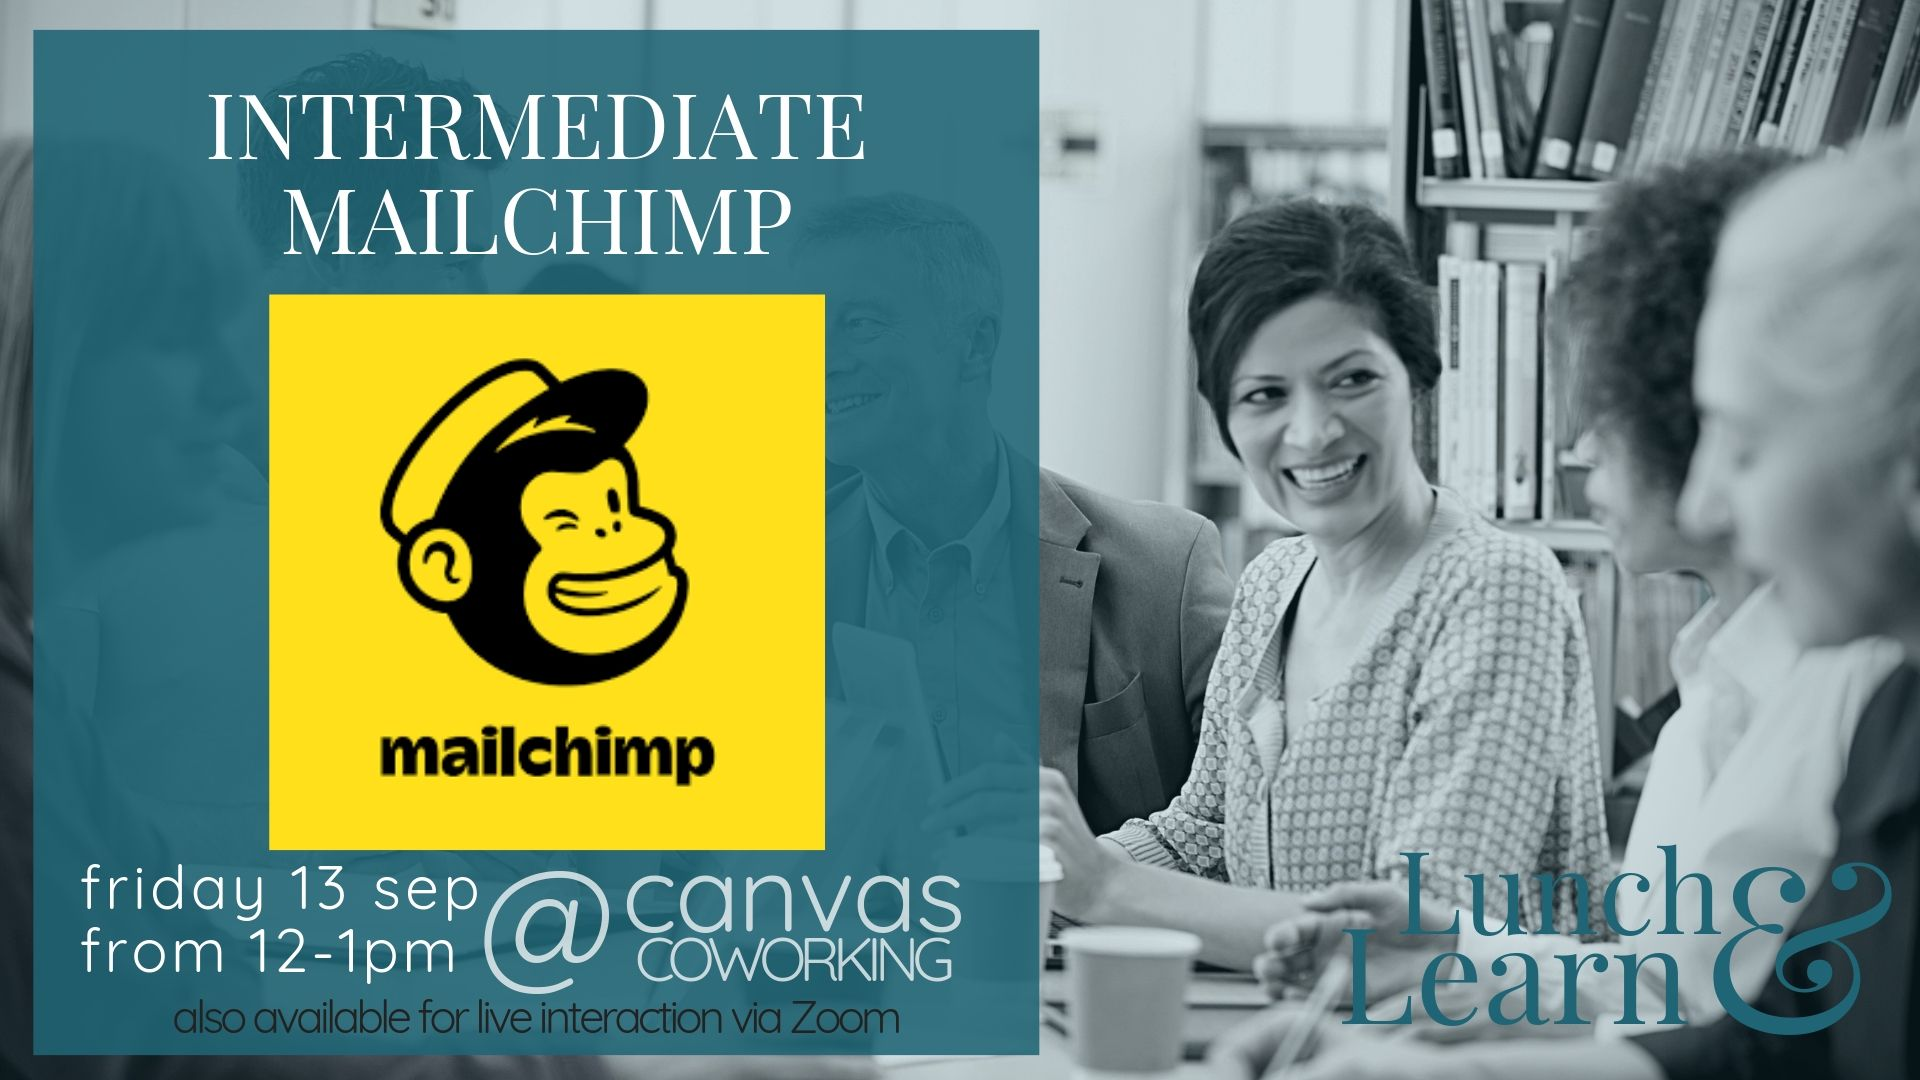 Intermediate Mailchimp, Lunch & Learn, Friday 13th September at Canvas Coworking